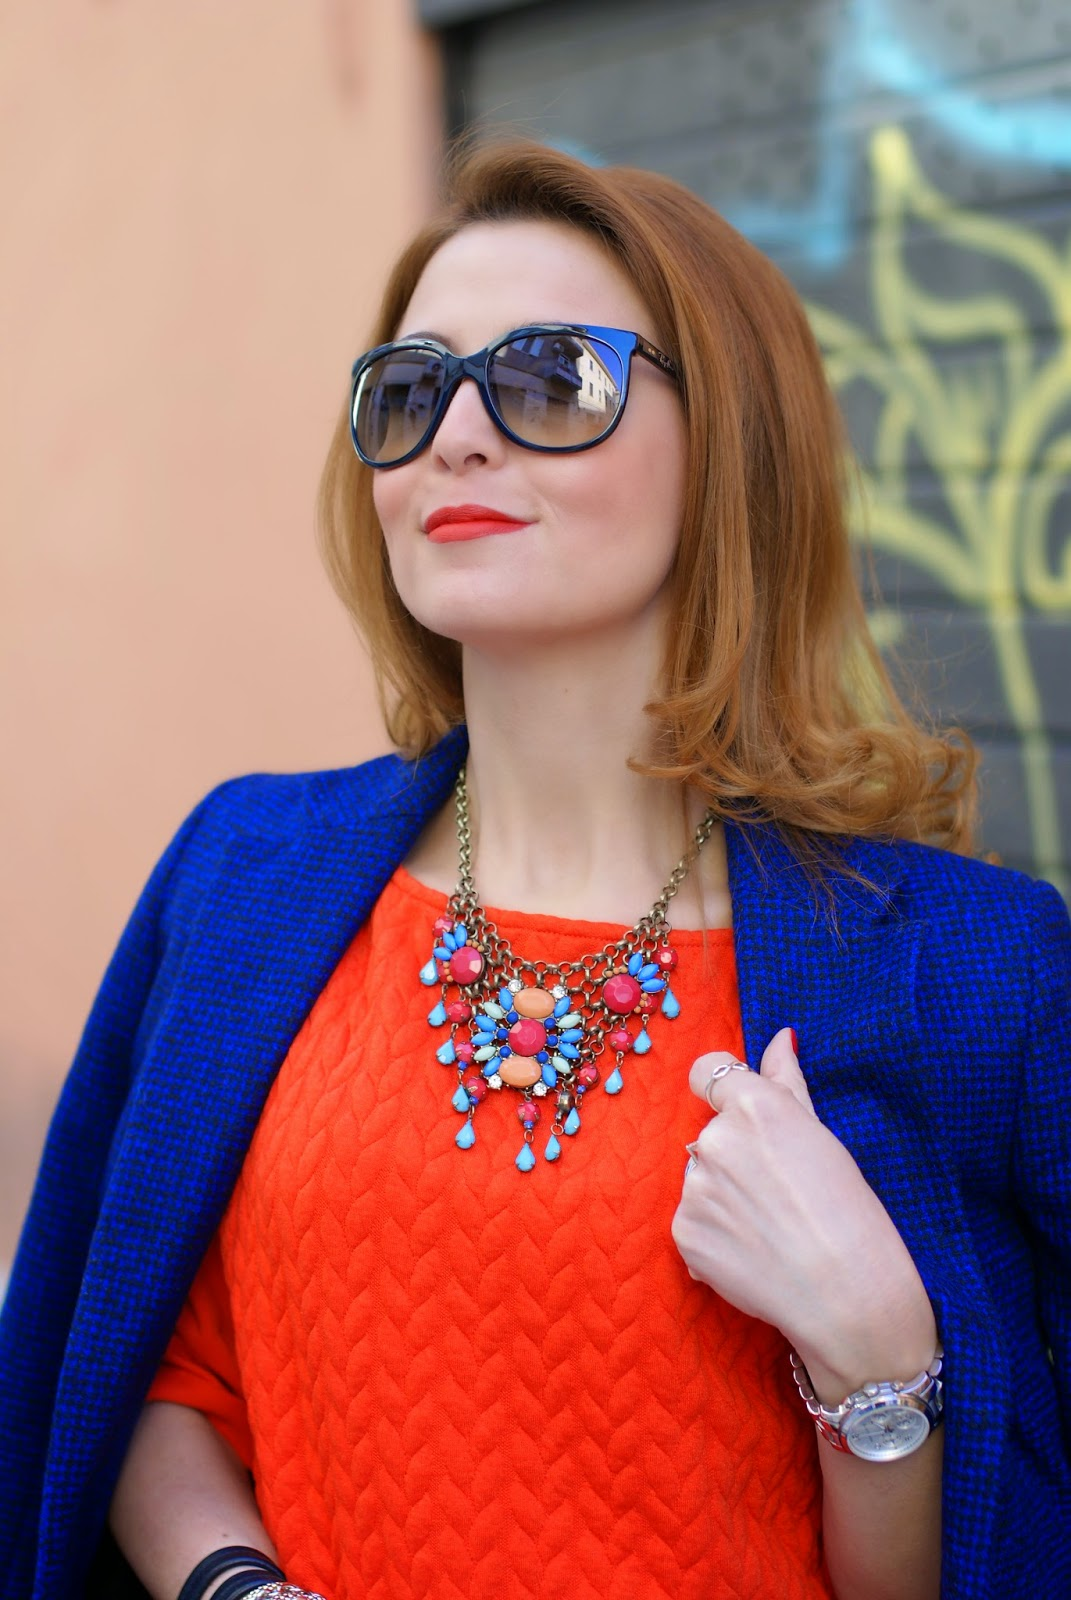 MA Lady Danger lipstick, side parted hair, ray-ban cat eye sunglasses, Miu Miu black tote, bijou brigitte necklace, Fashion and Cookies fashion blog, fashion blogger